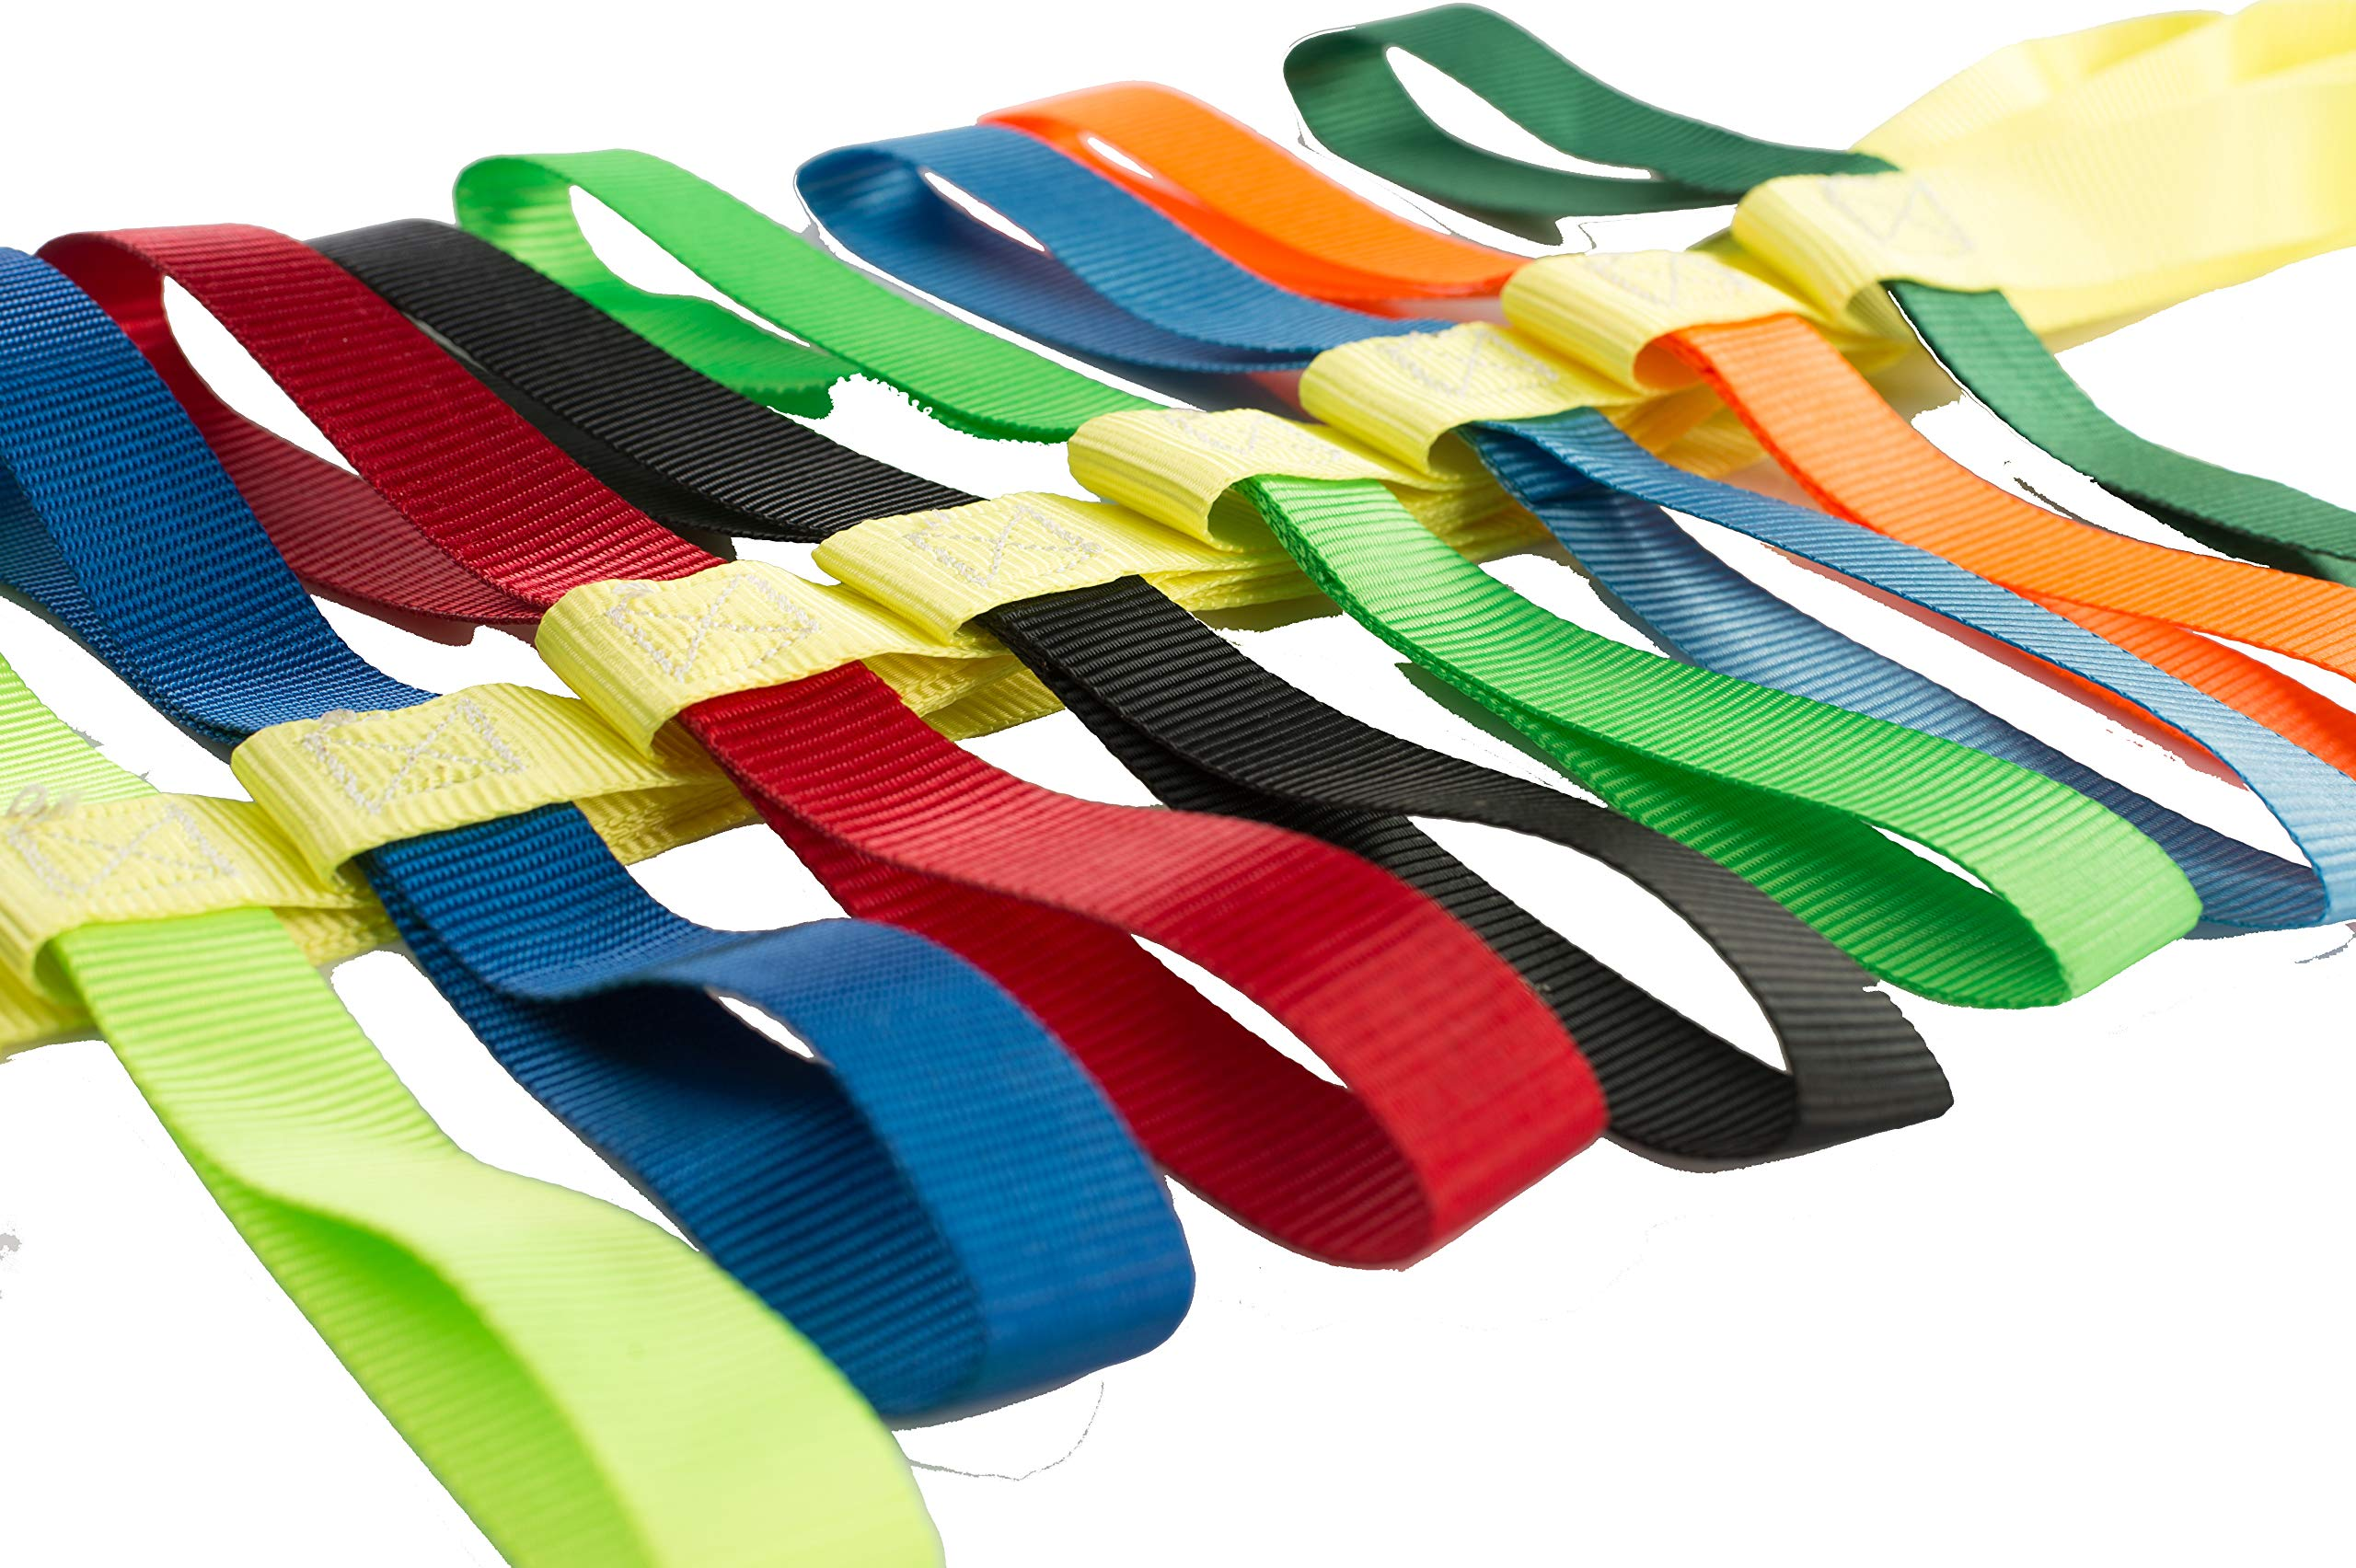 The Learning Classroom Preschool Walking Rope, Carry Bag, 16-Colorful Handles, Blue/Green/Yellow, 1-Pack or 2-Pack, Daycare, Toddler by The Learning Classroom (Image #4)